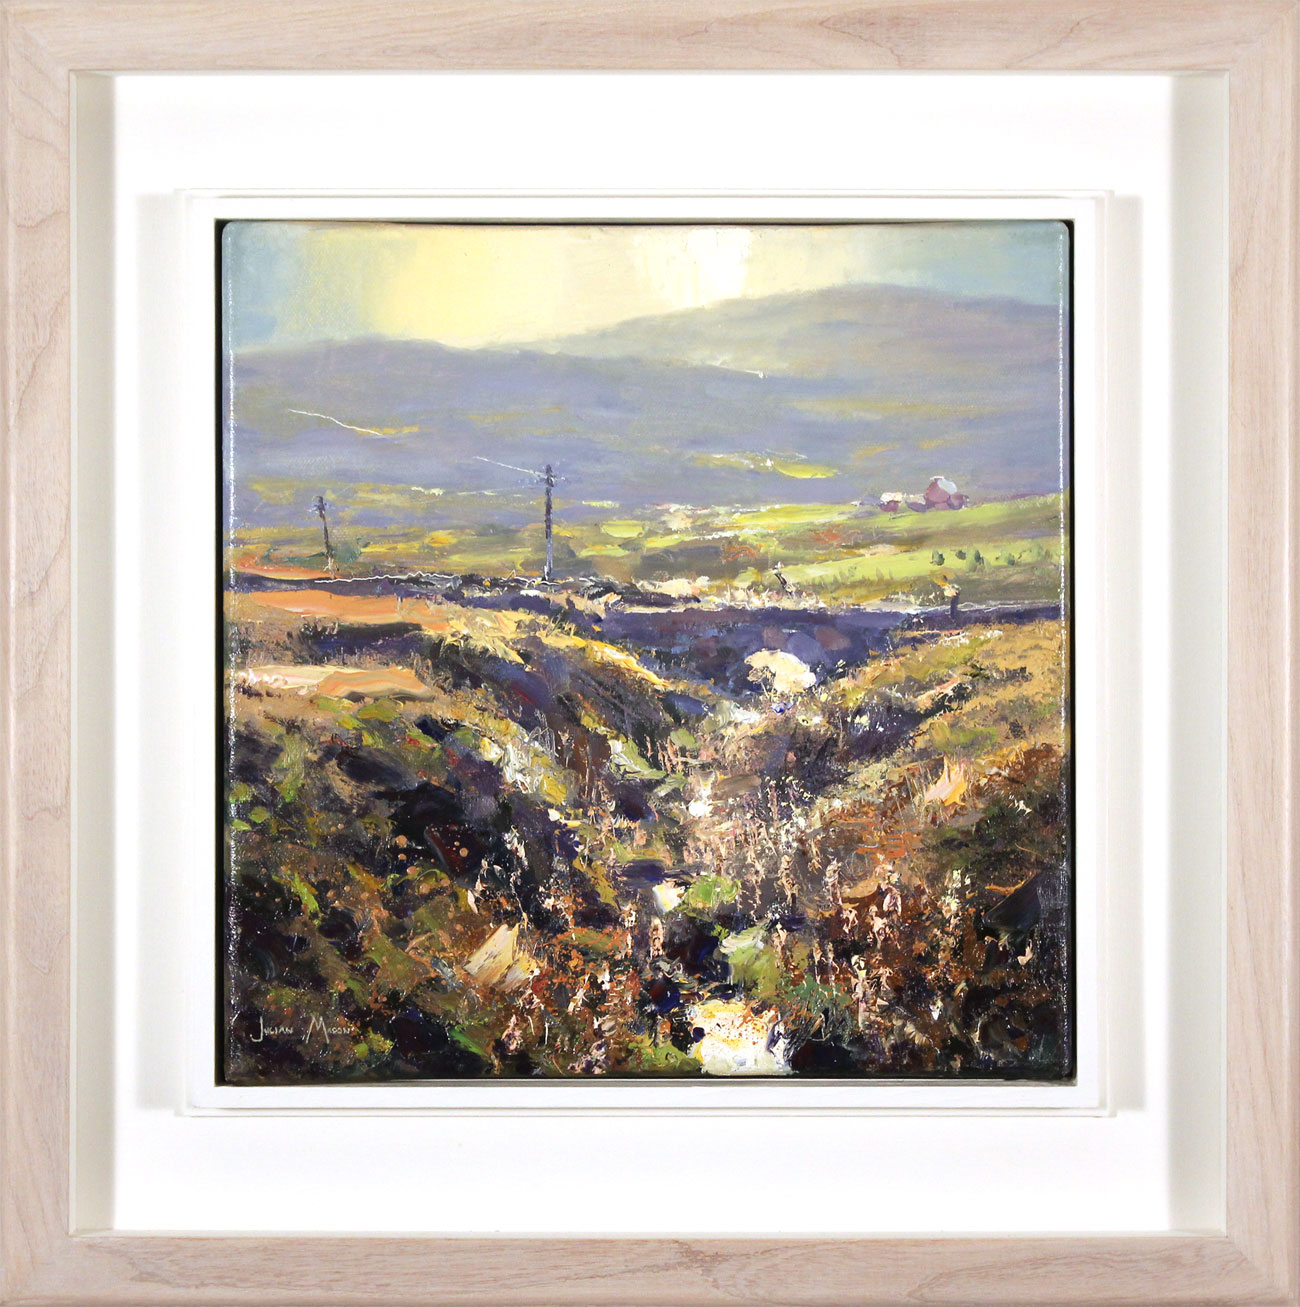 Julian Mason, Original oil painting on canvas, Goldstitch Moss Click to enlarge